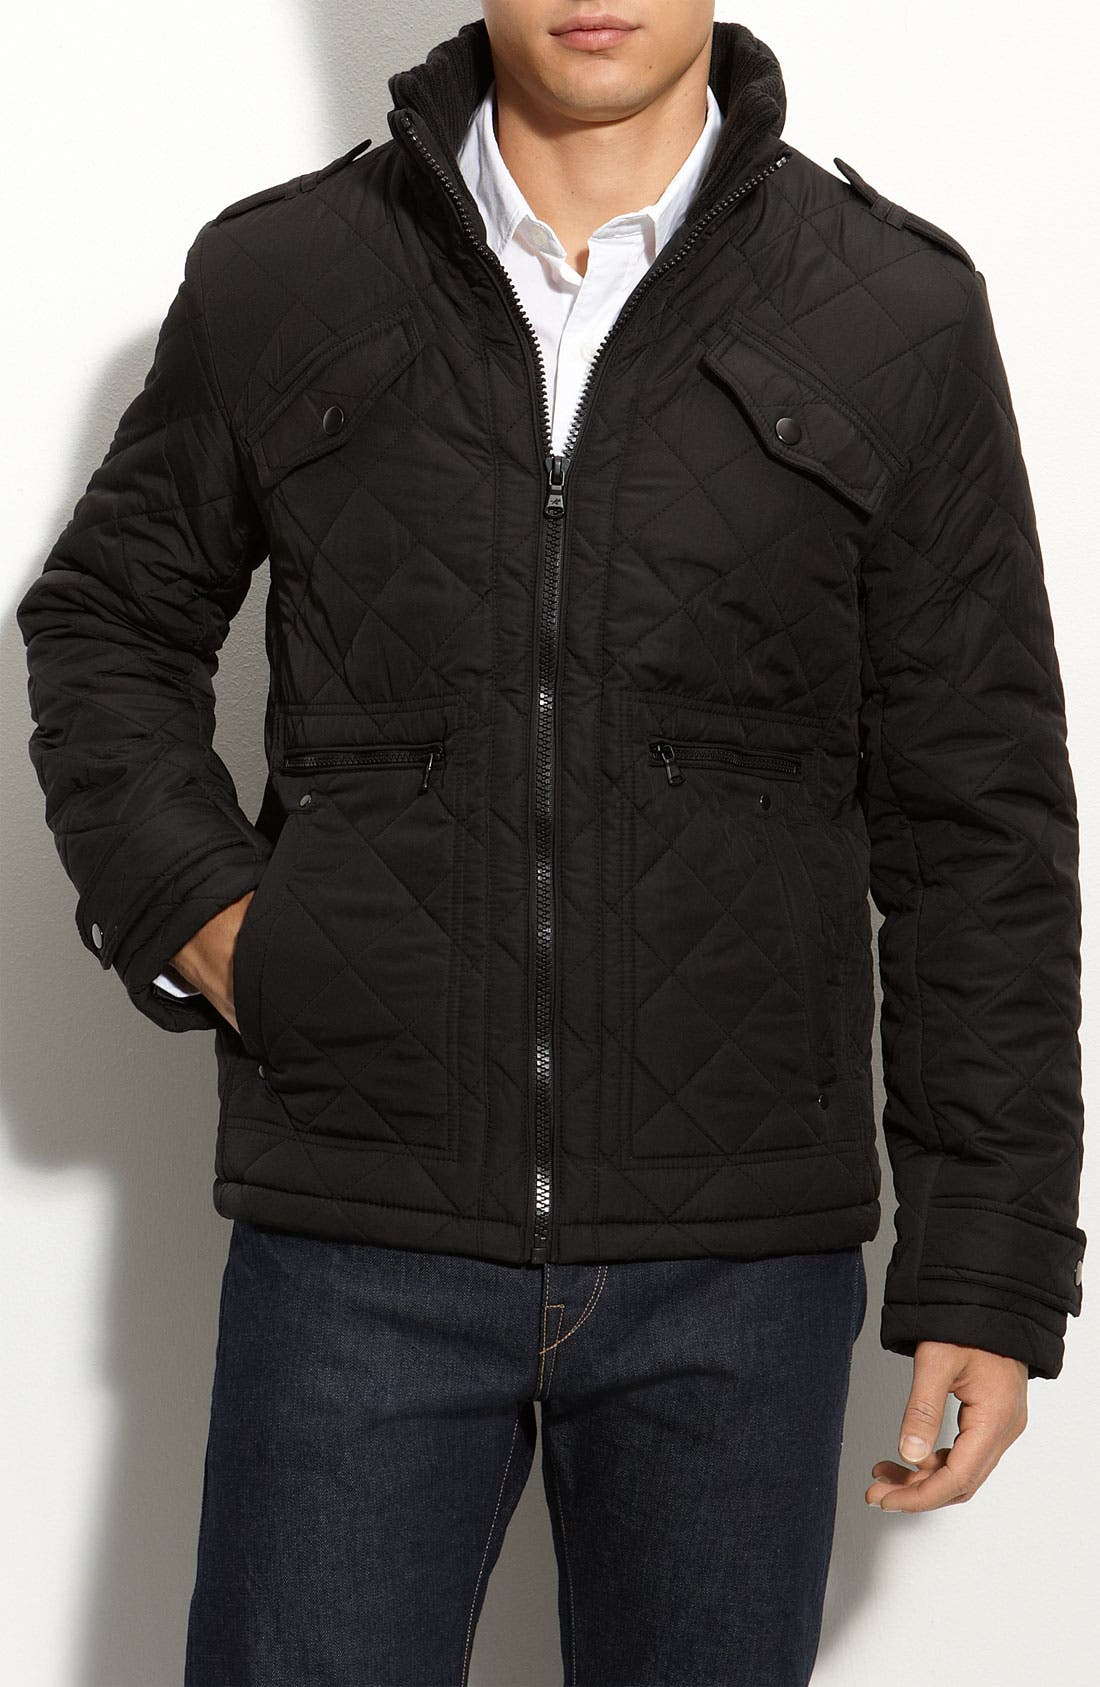 Alternate Image 1 Selected - Kenneth Cole New York Quilted Jacket